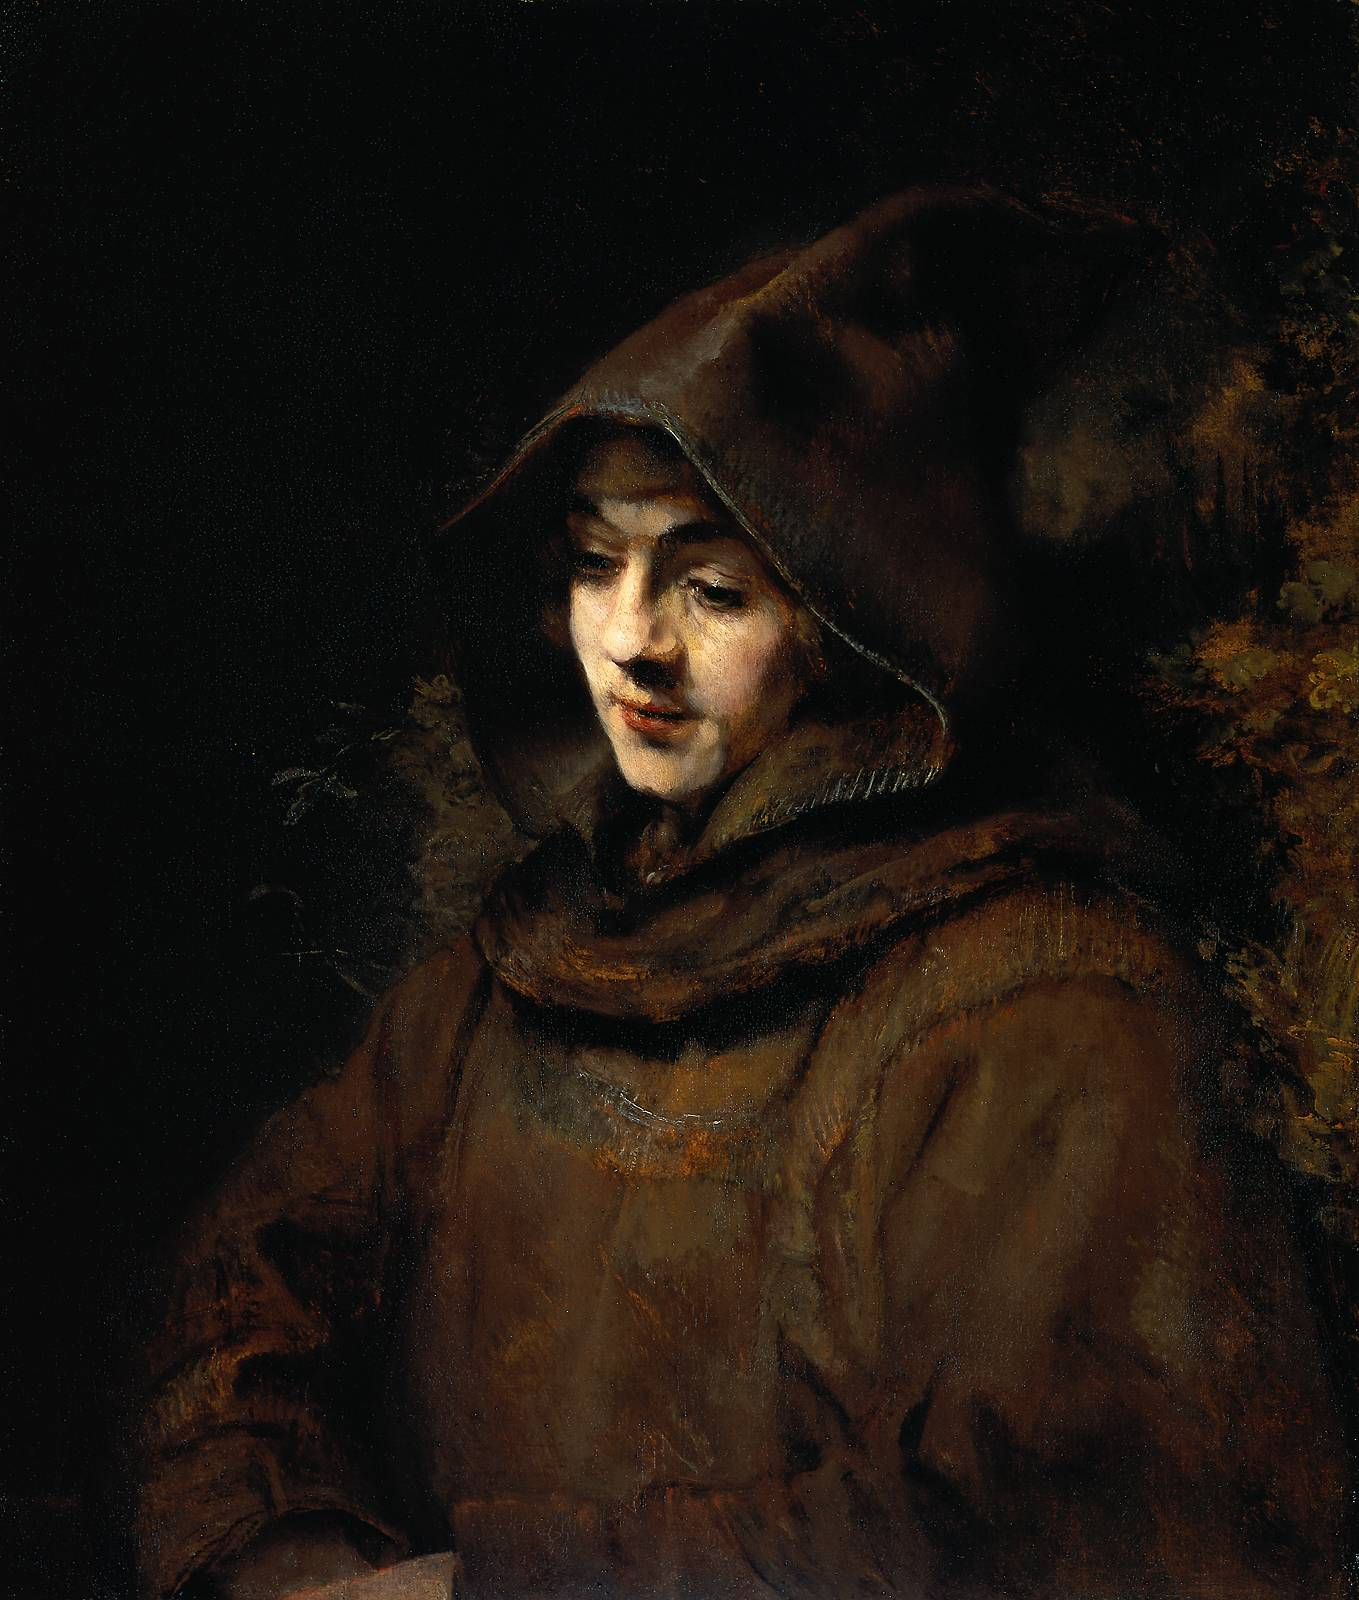 titus-van-rijn-in-a-monk-s-habit-1660